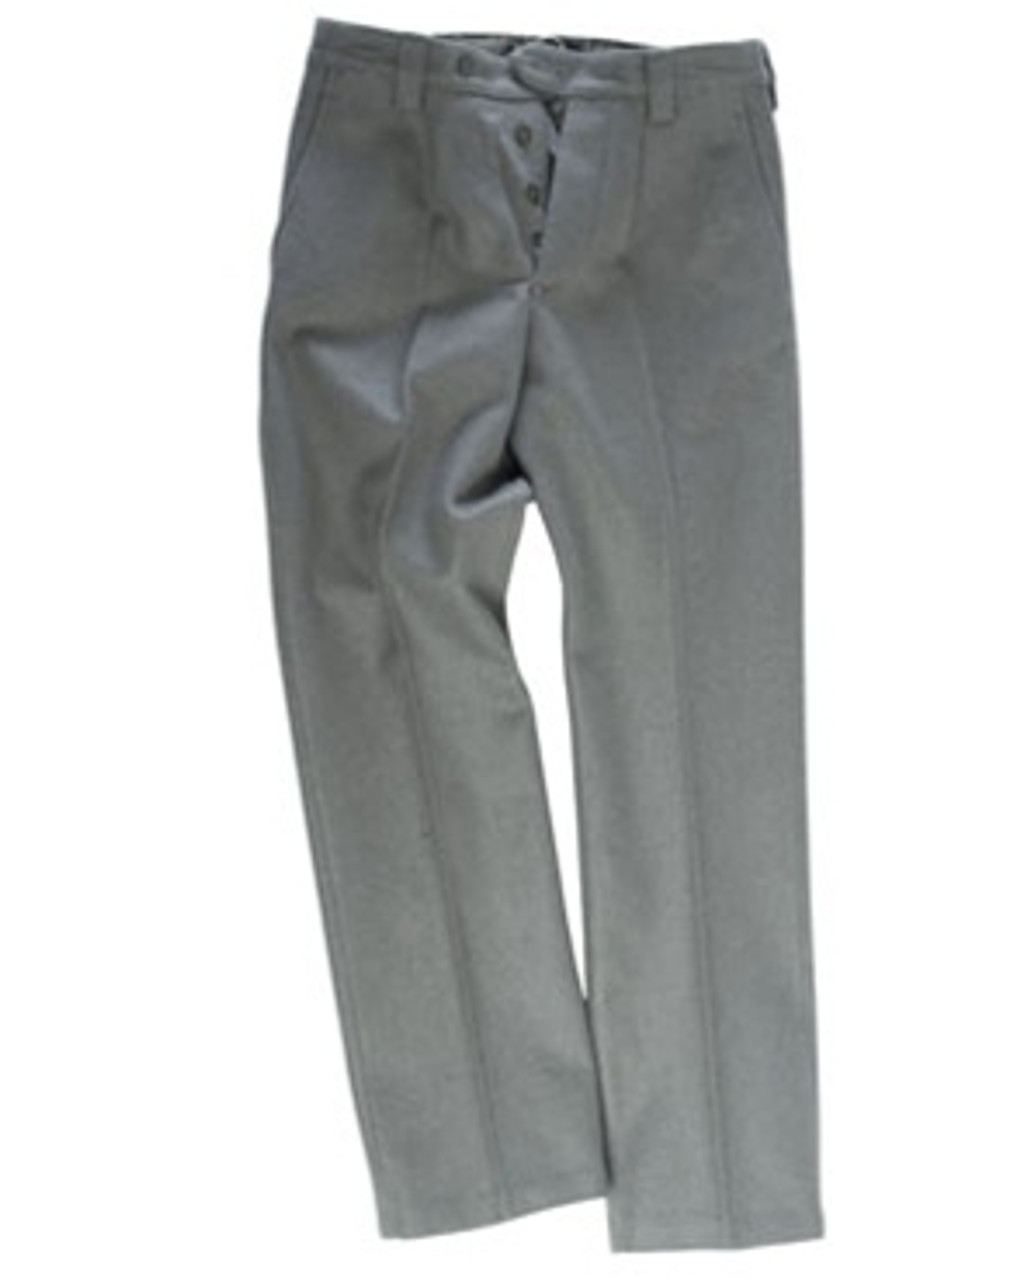 East German EM Grey Wool Service Pants from Hessen Surplus